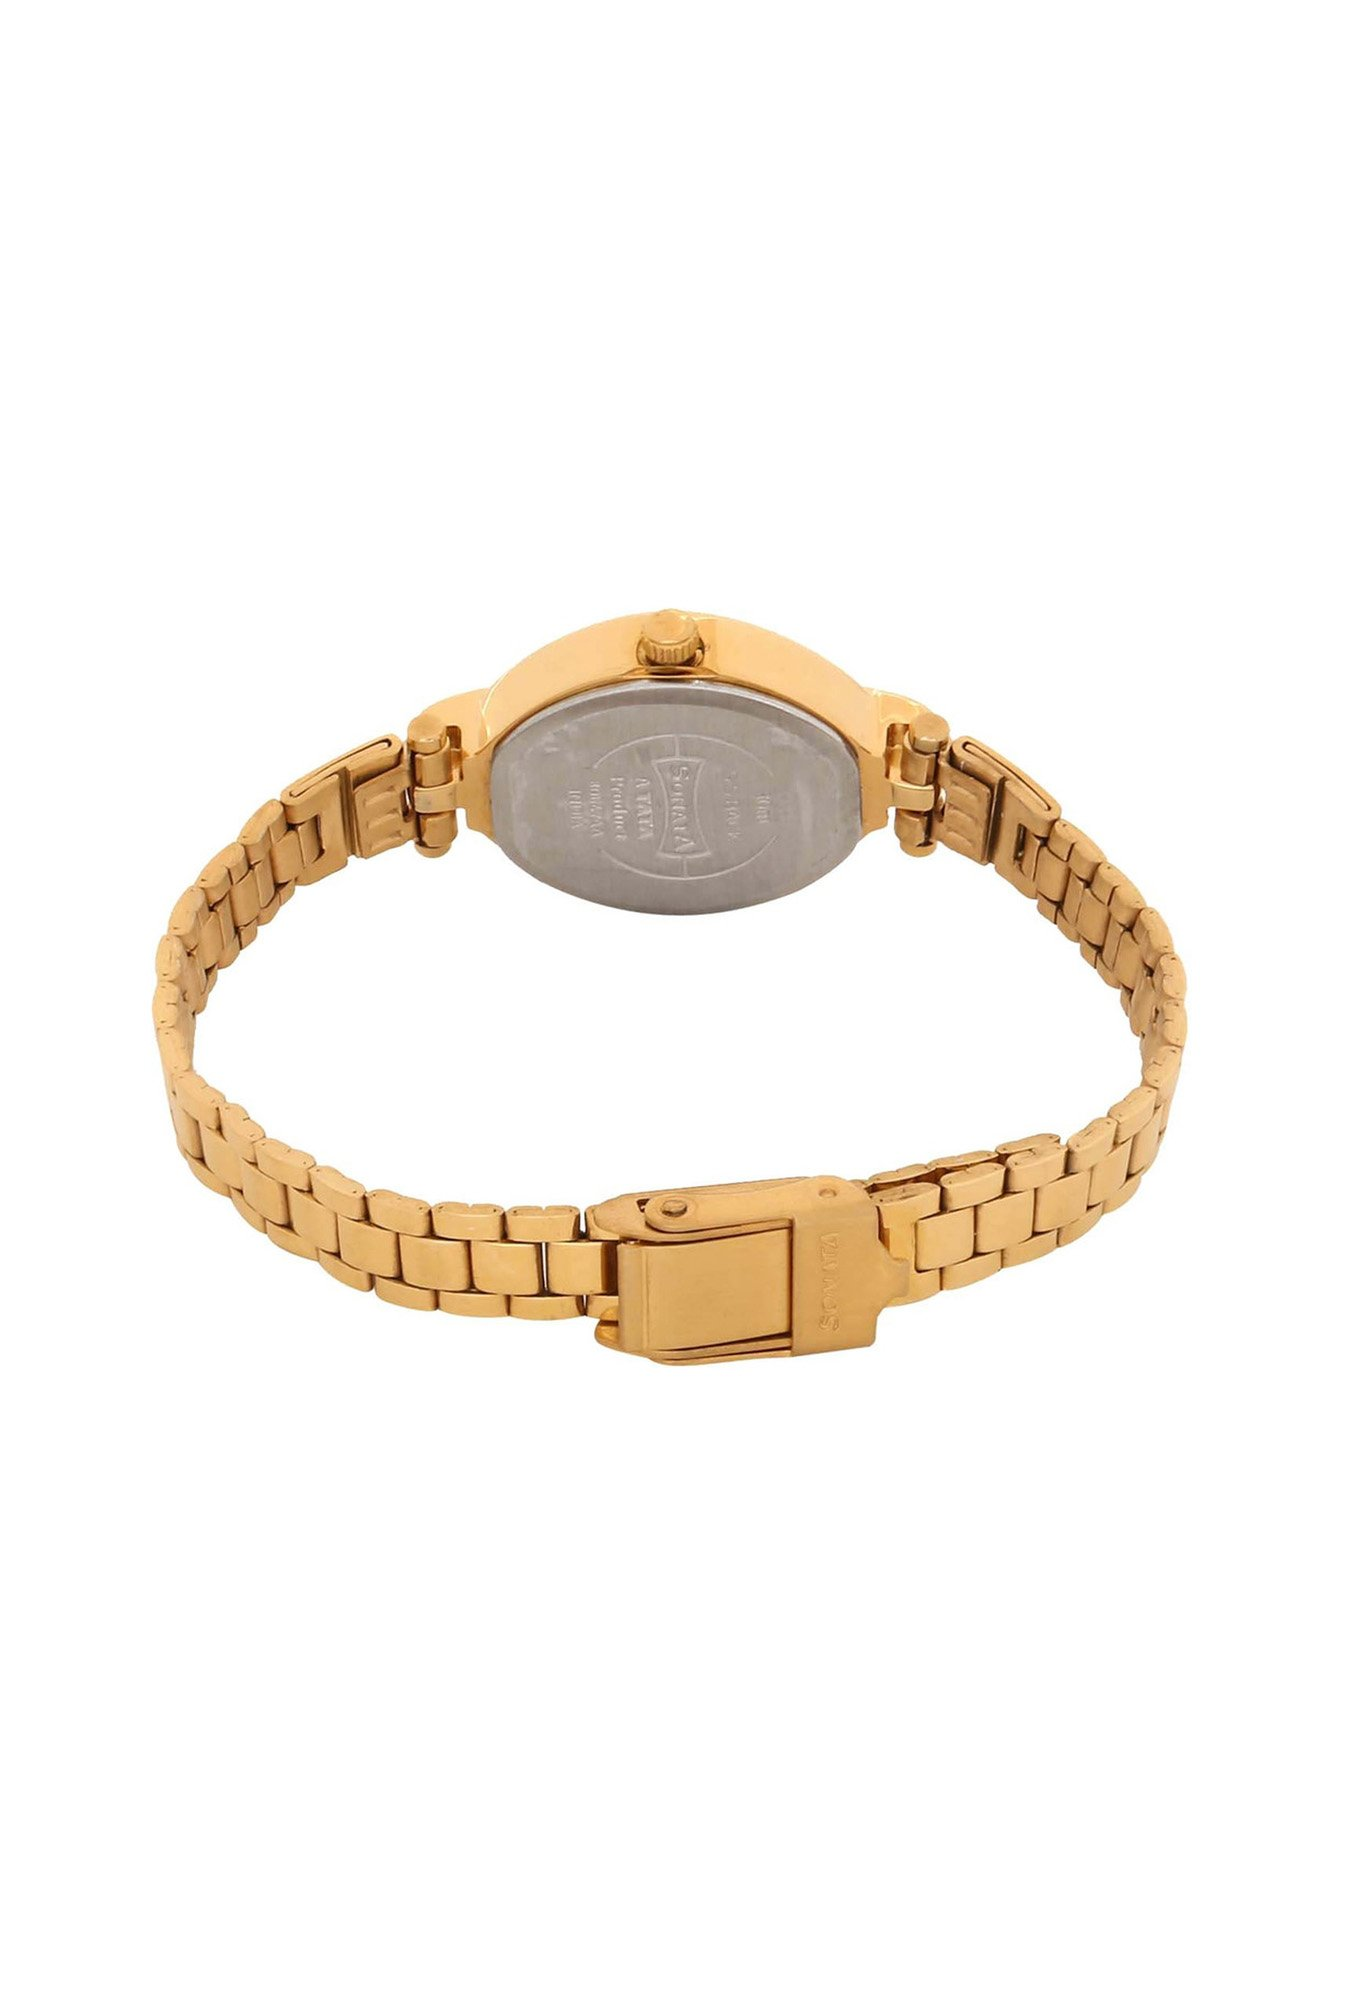 Sonata NG8064YM01C Sona Sitara Analog Women's Watch